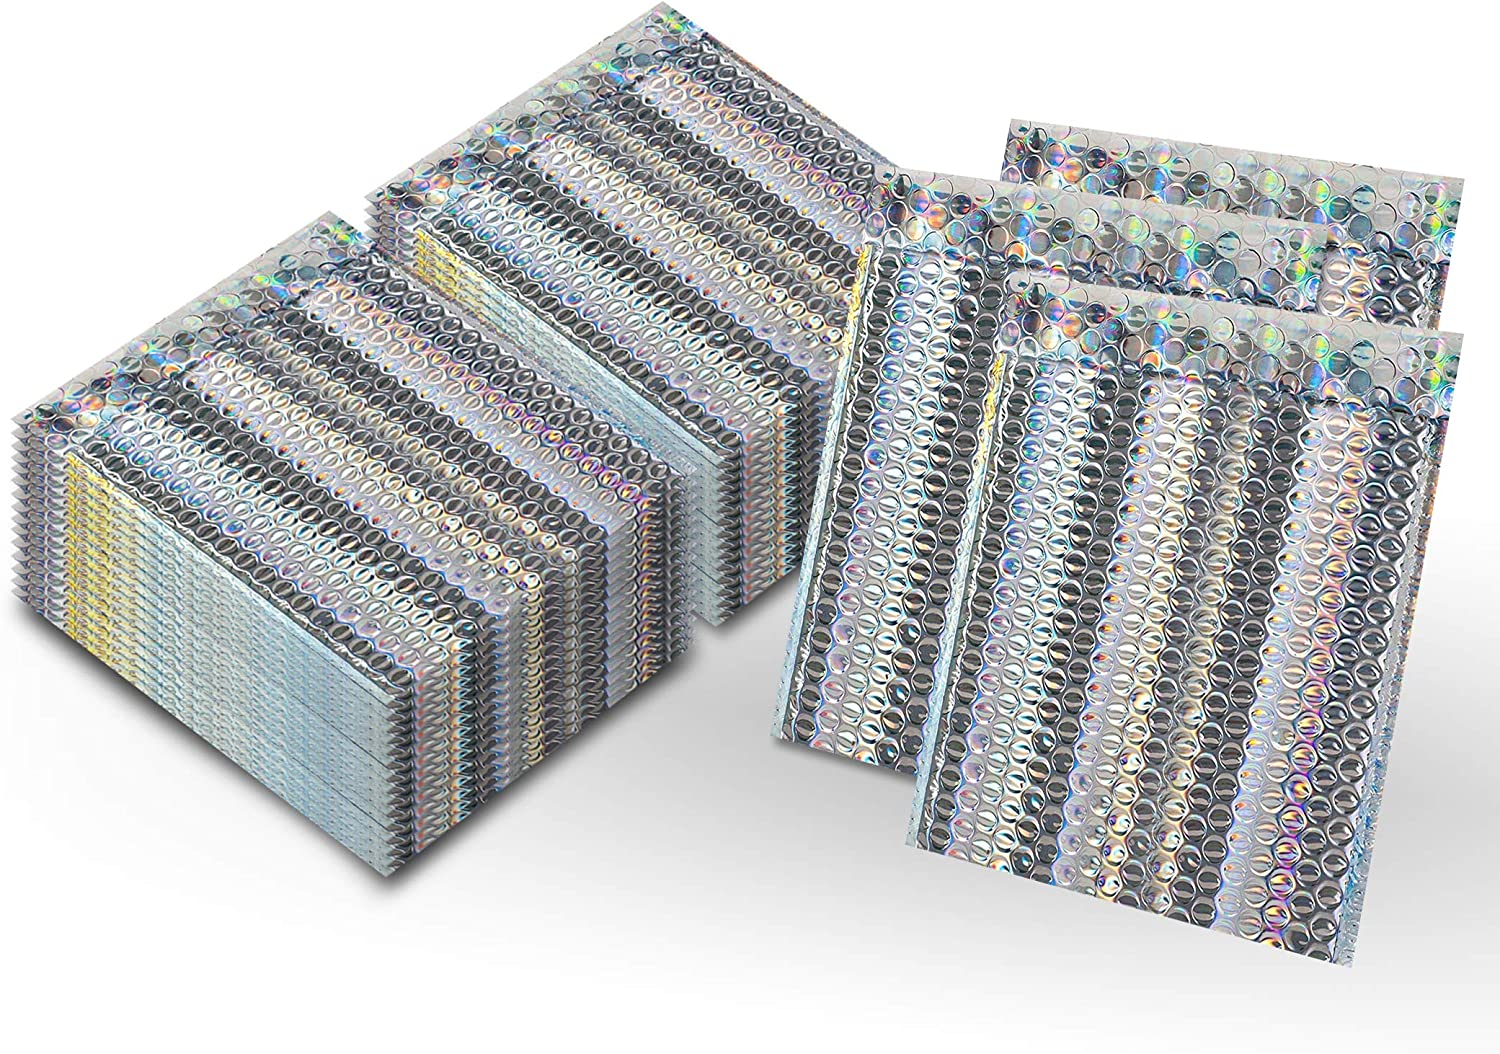 Amiff Pack of 250 Holographic Bubble Glamour Max 82% OFF 9 Mailers 6.5 x Bombing free shipping Pad